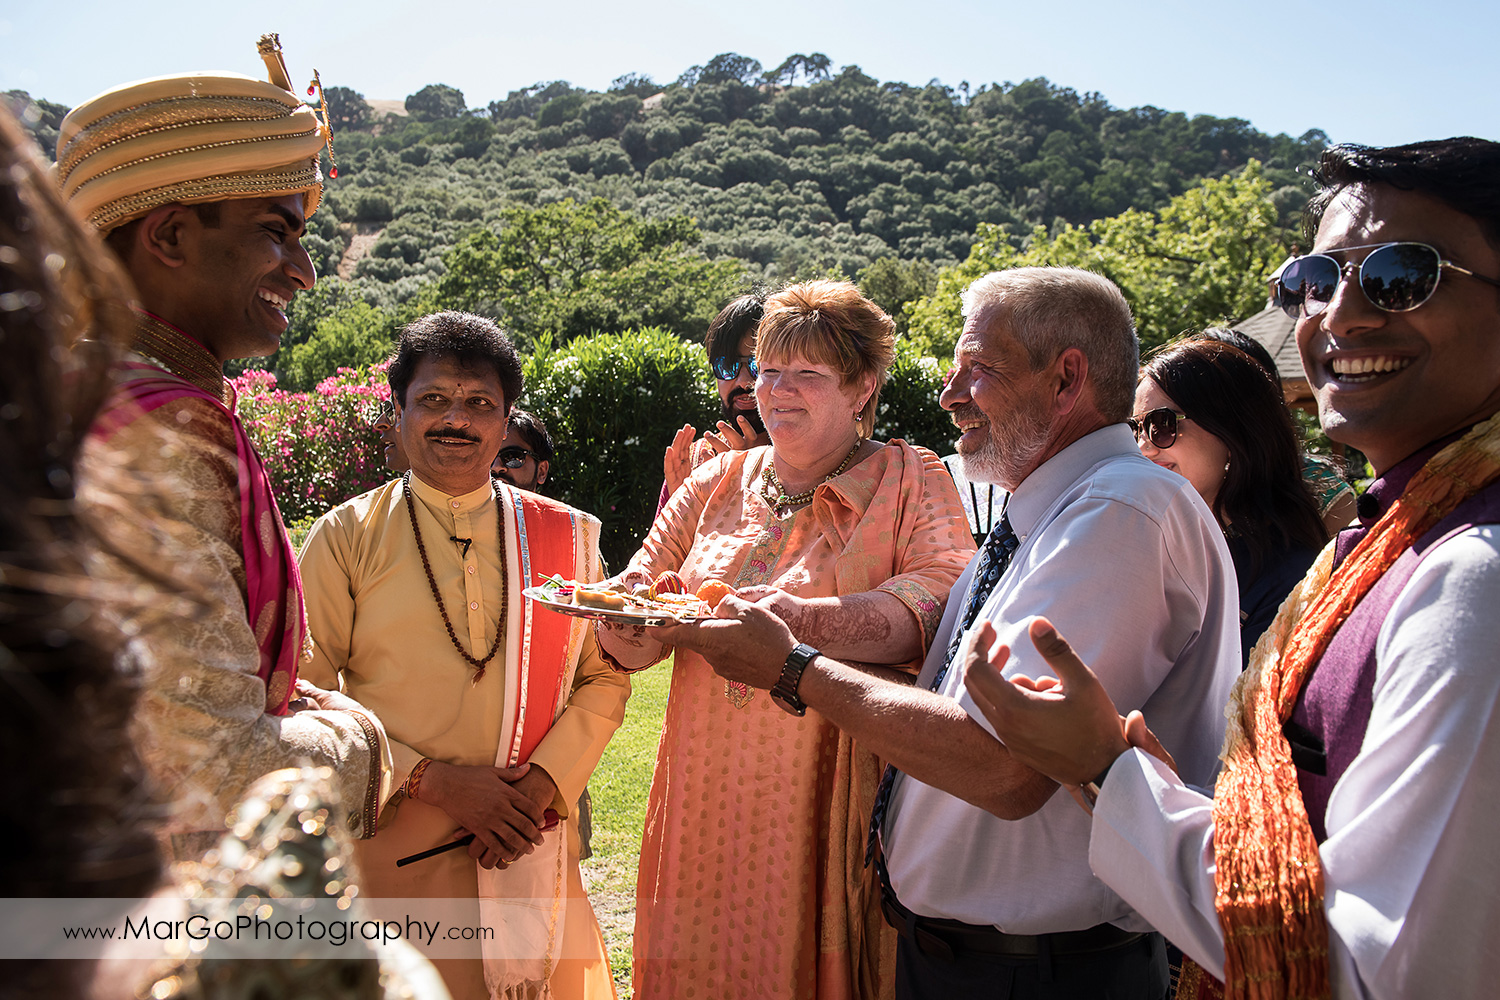 Dwar Puja during Indian wedding at Elliston Vineyards in Sunol